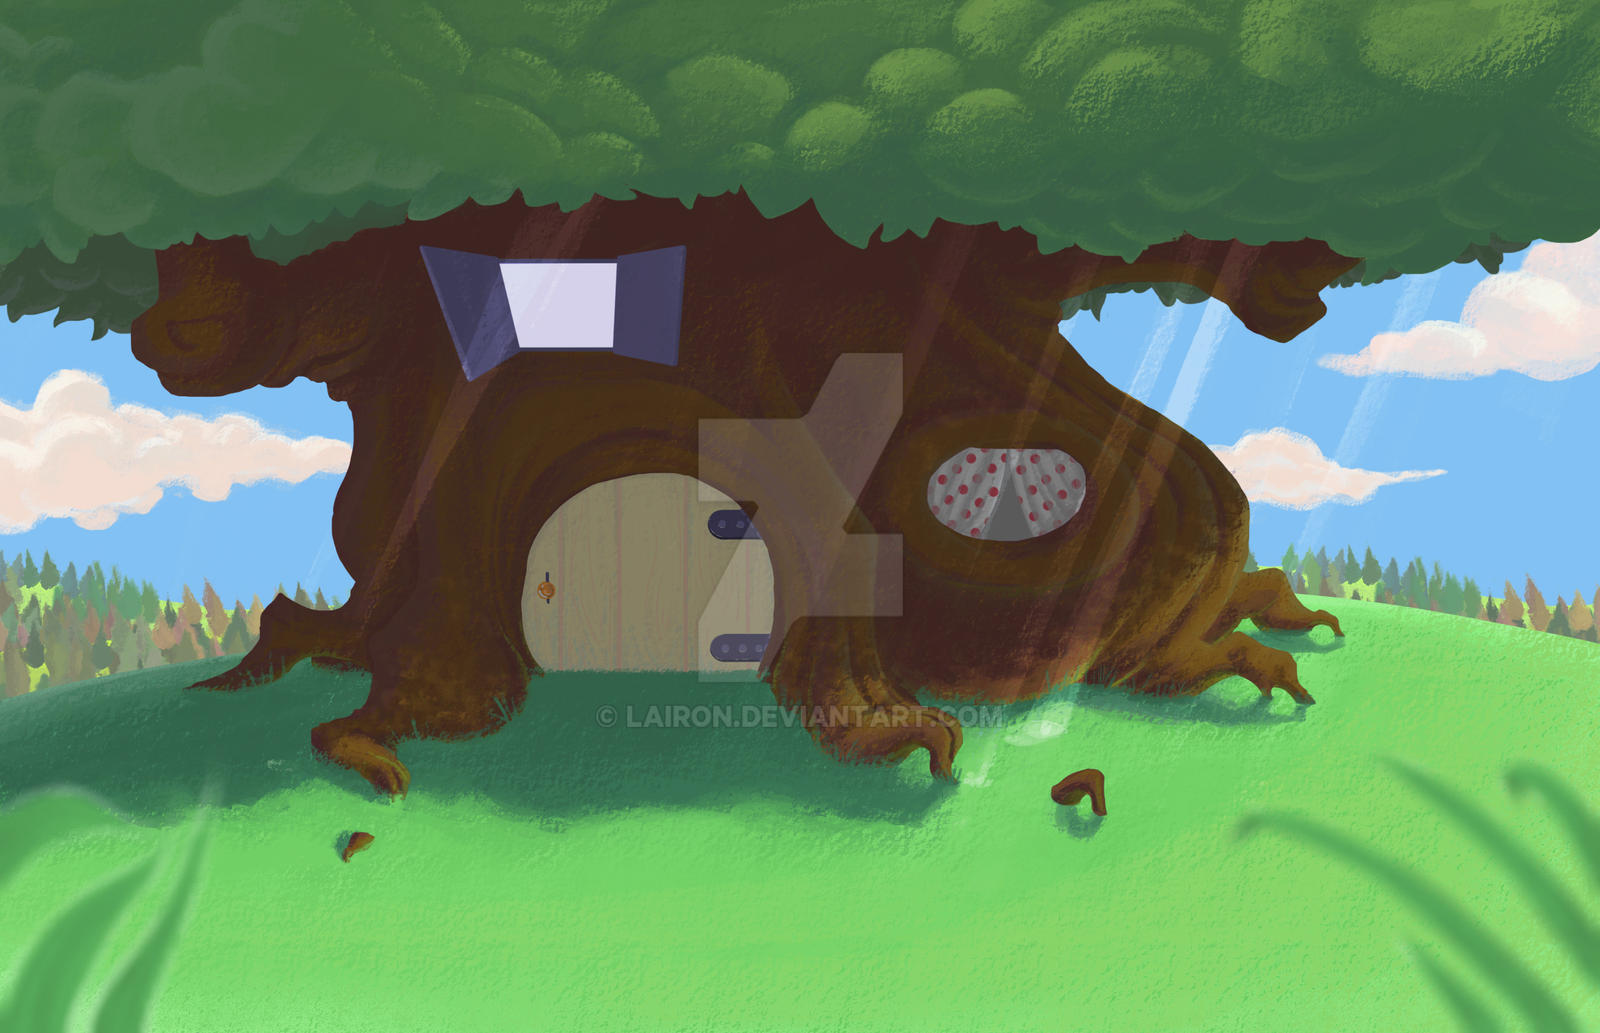 tree house by Lairon